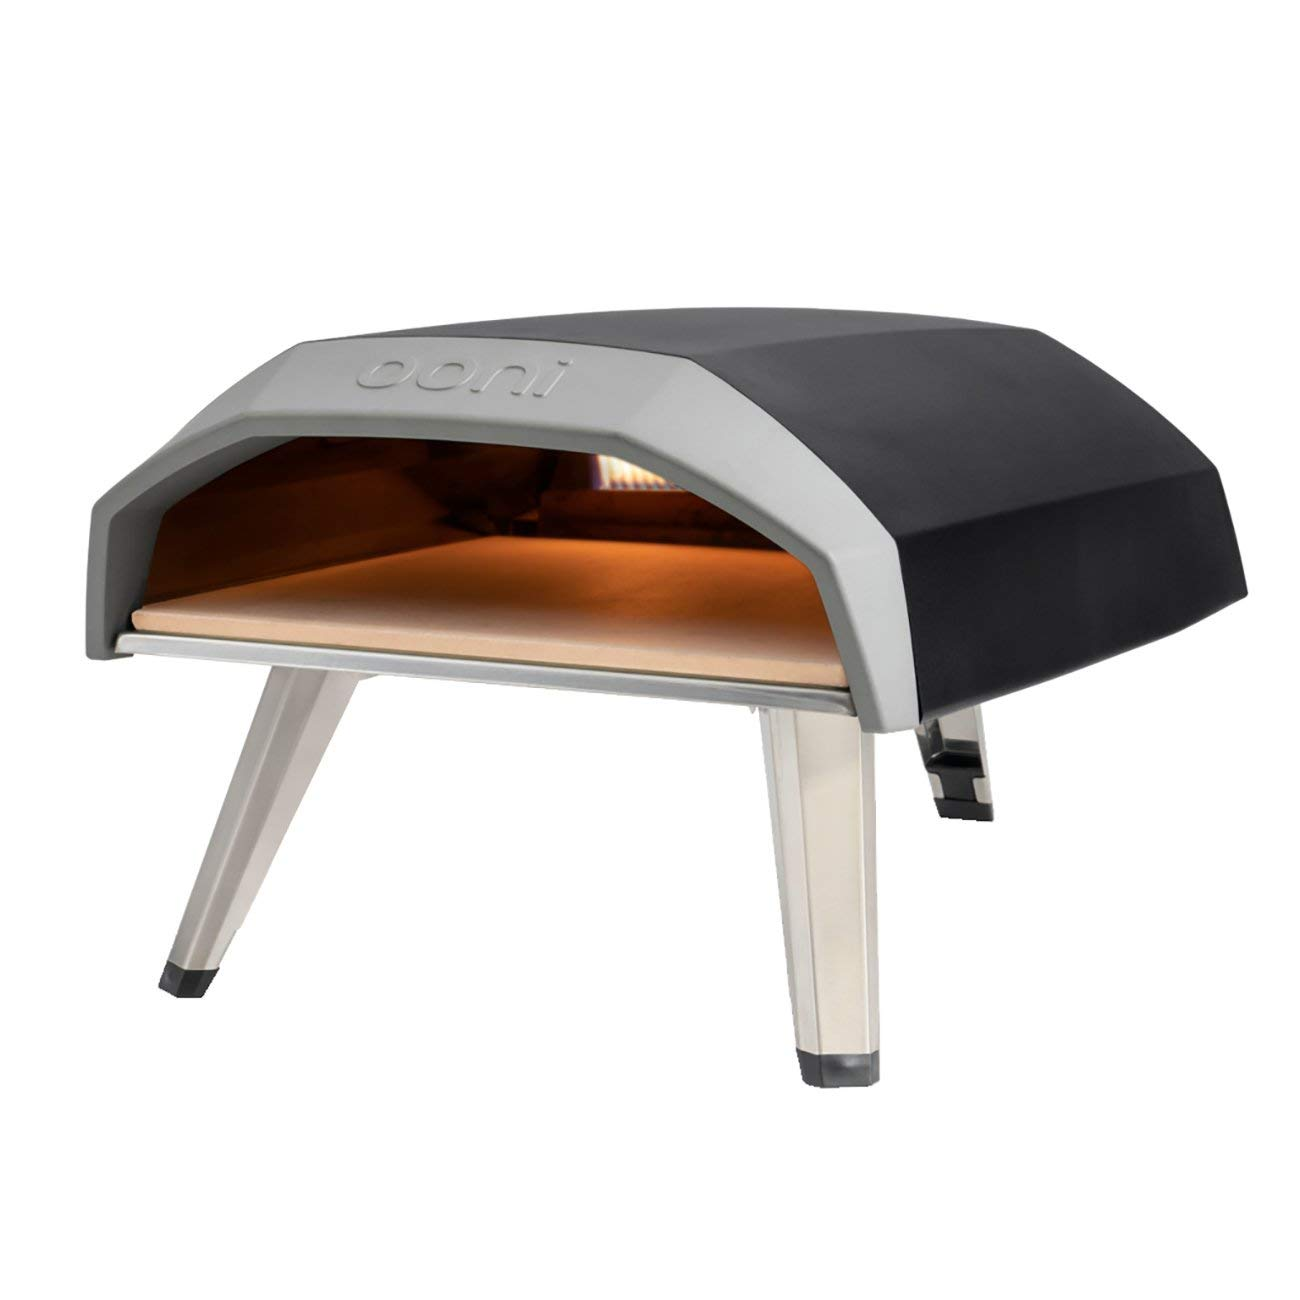 Ooni Koda Pizza Oven Cooking System